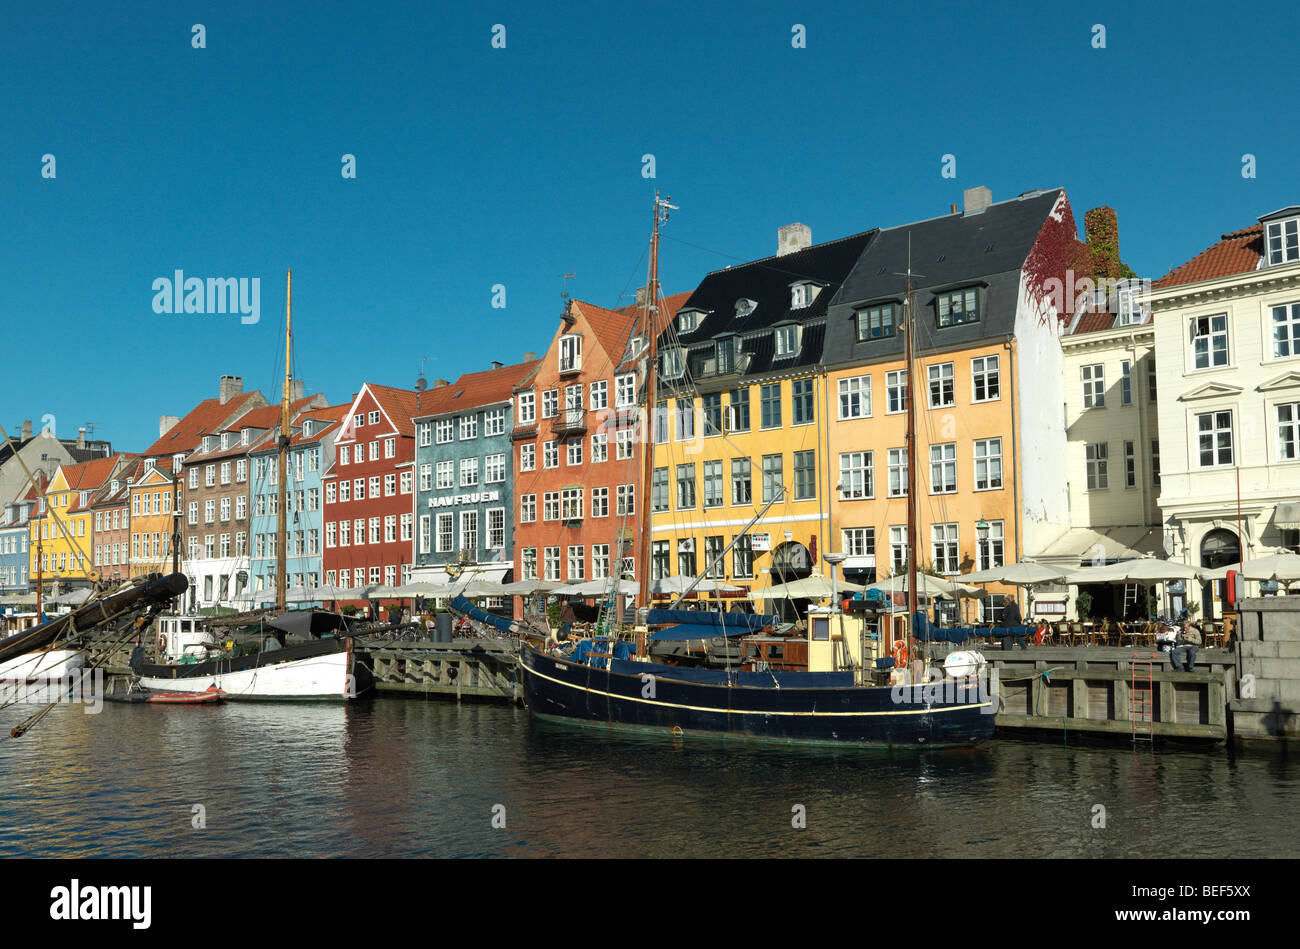 Ships are pictured in Nyhavn, Copenhagen, Denmark in front of colorful buildings on August 6, 2009. Stock Photo